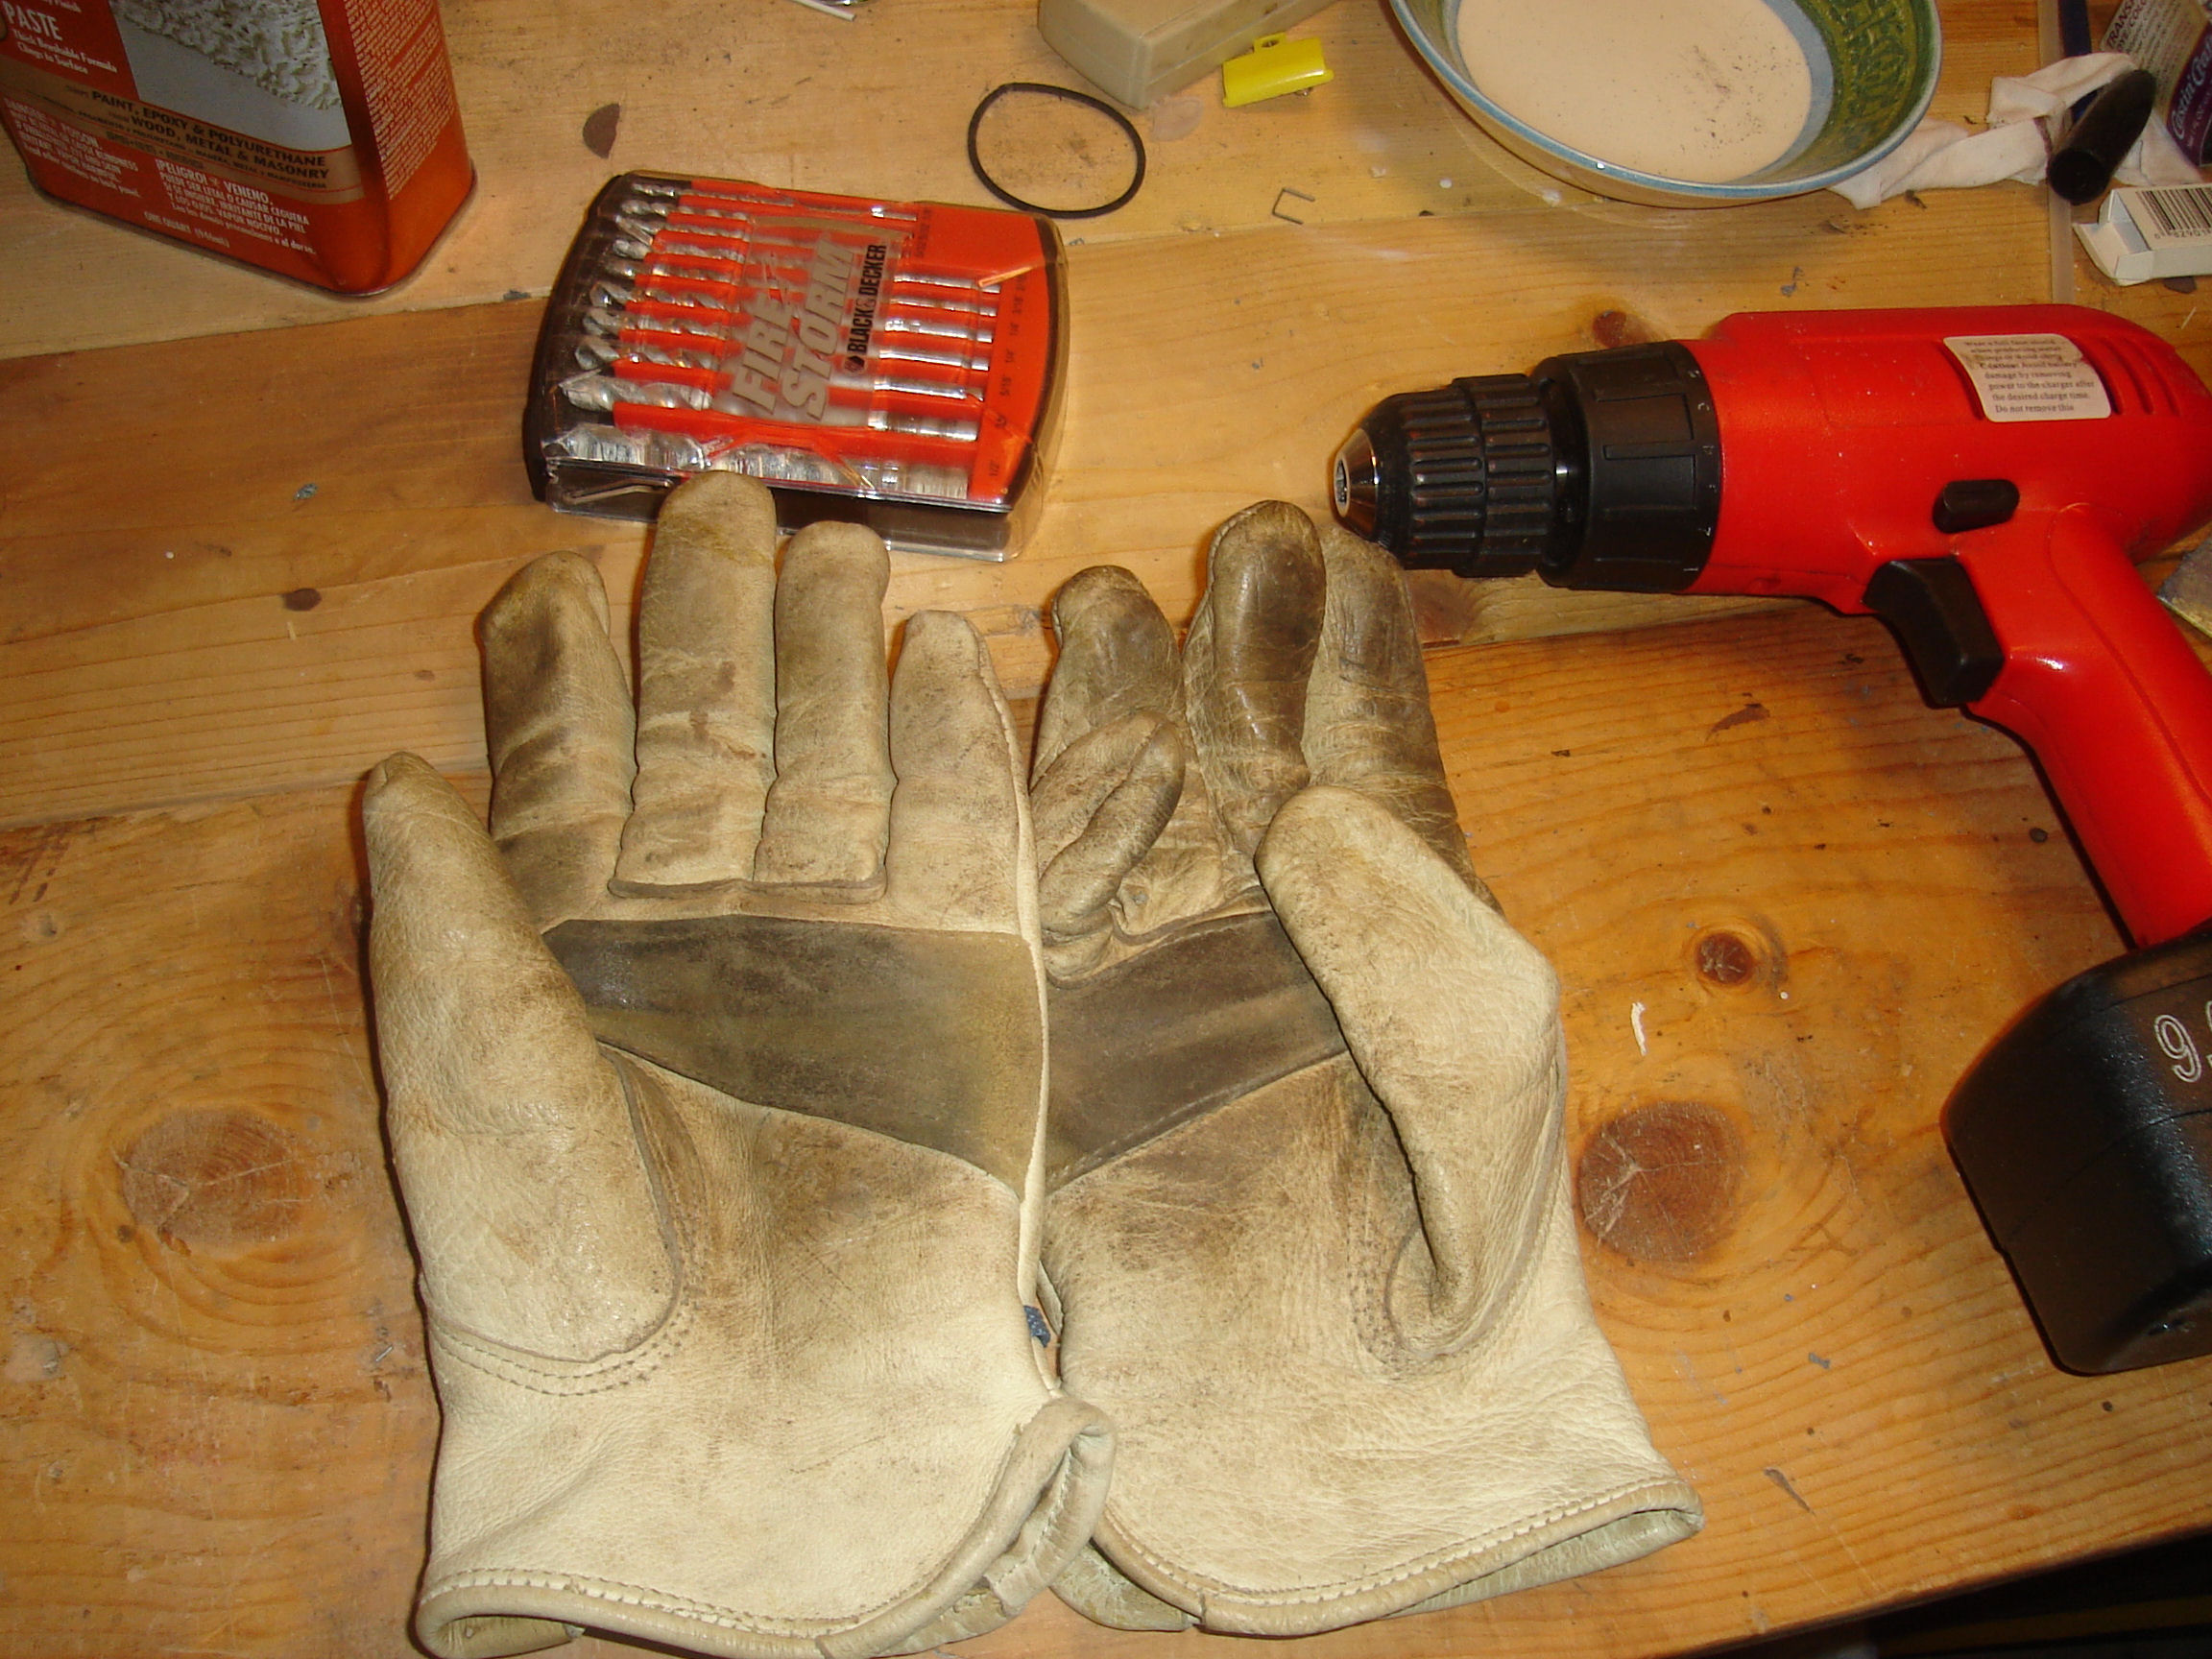 My work gloves: cowhide and unclean